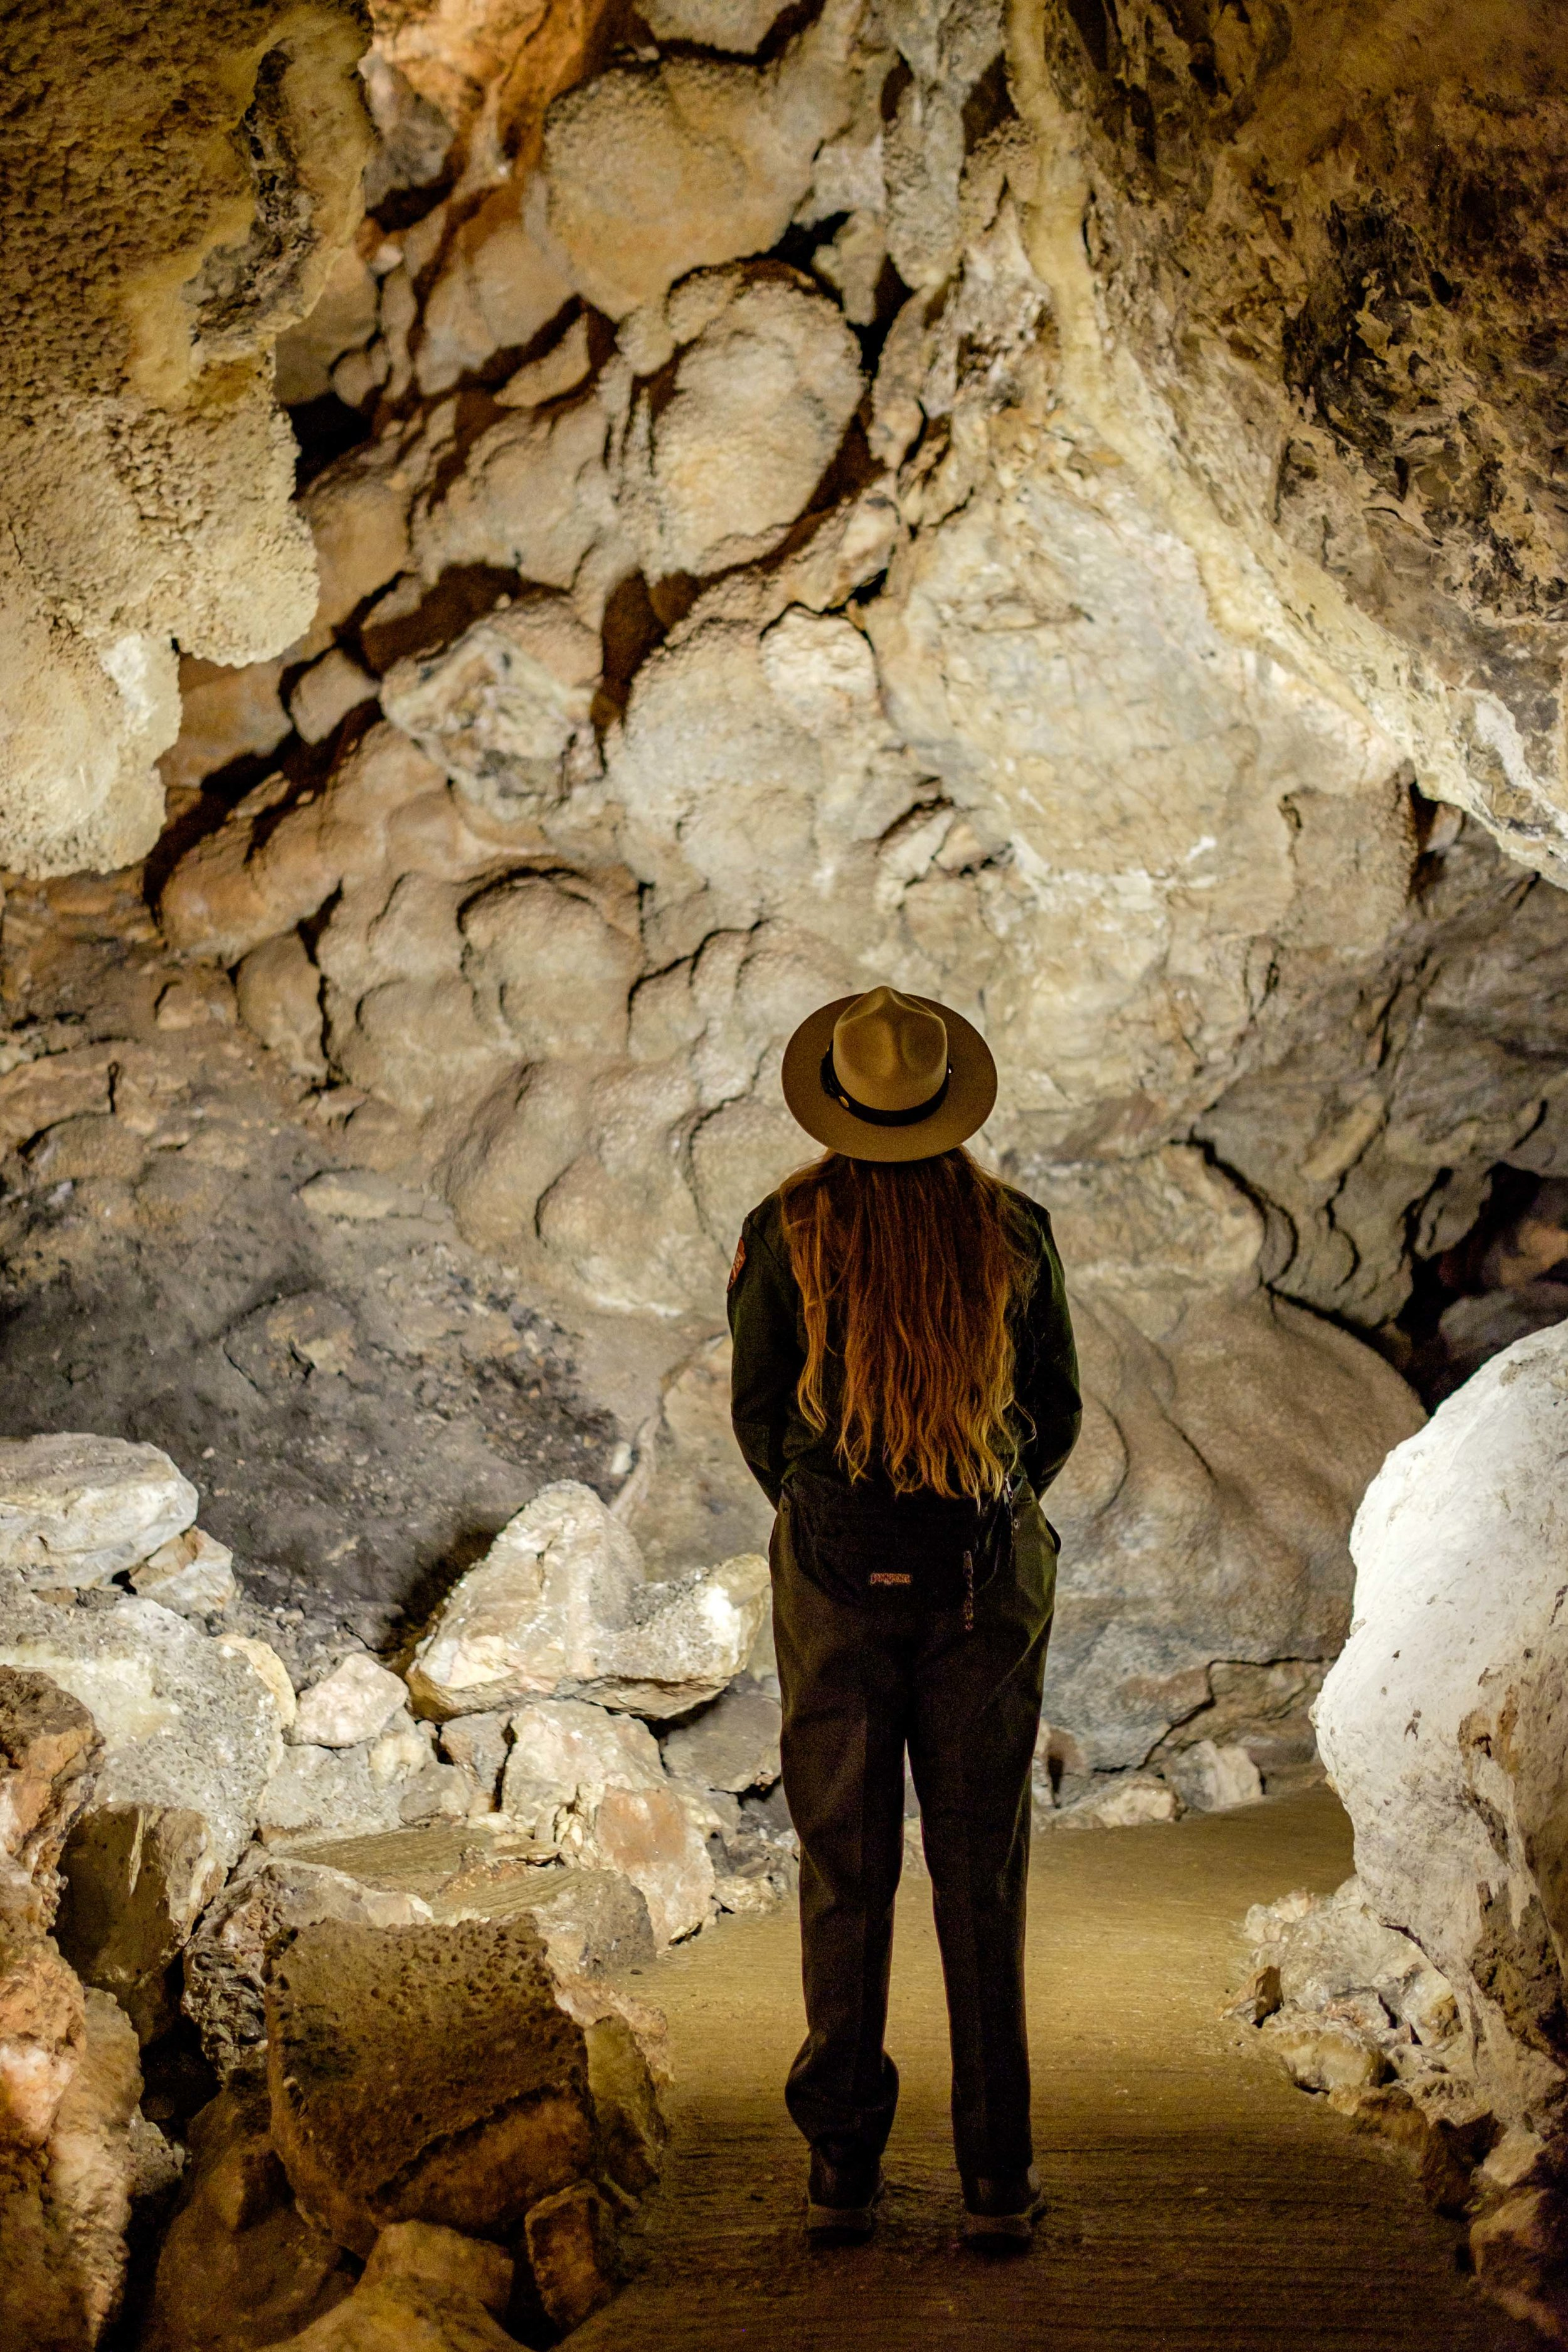 One of America's most awesome and inspired rangers, Ranger Riley, leading us into Jewel Cave in South Dakota.  She is on a quest of her own to visit all 417 National Park sites .